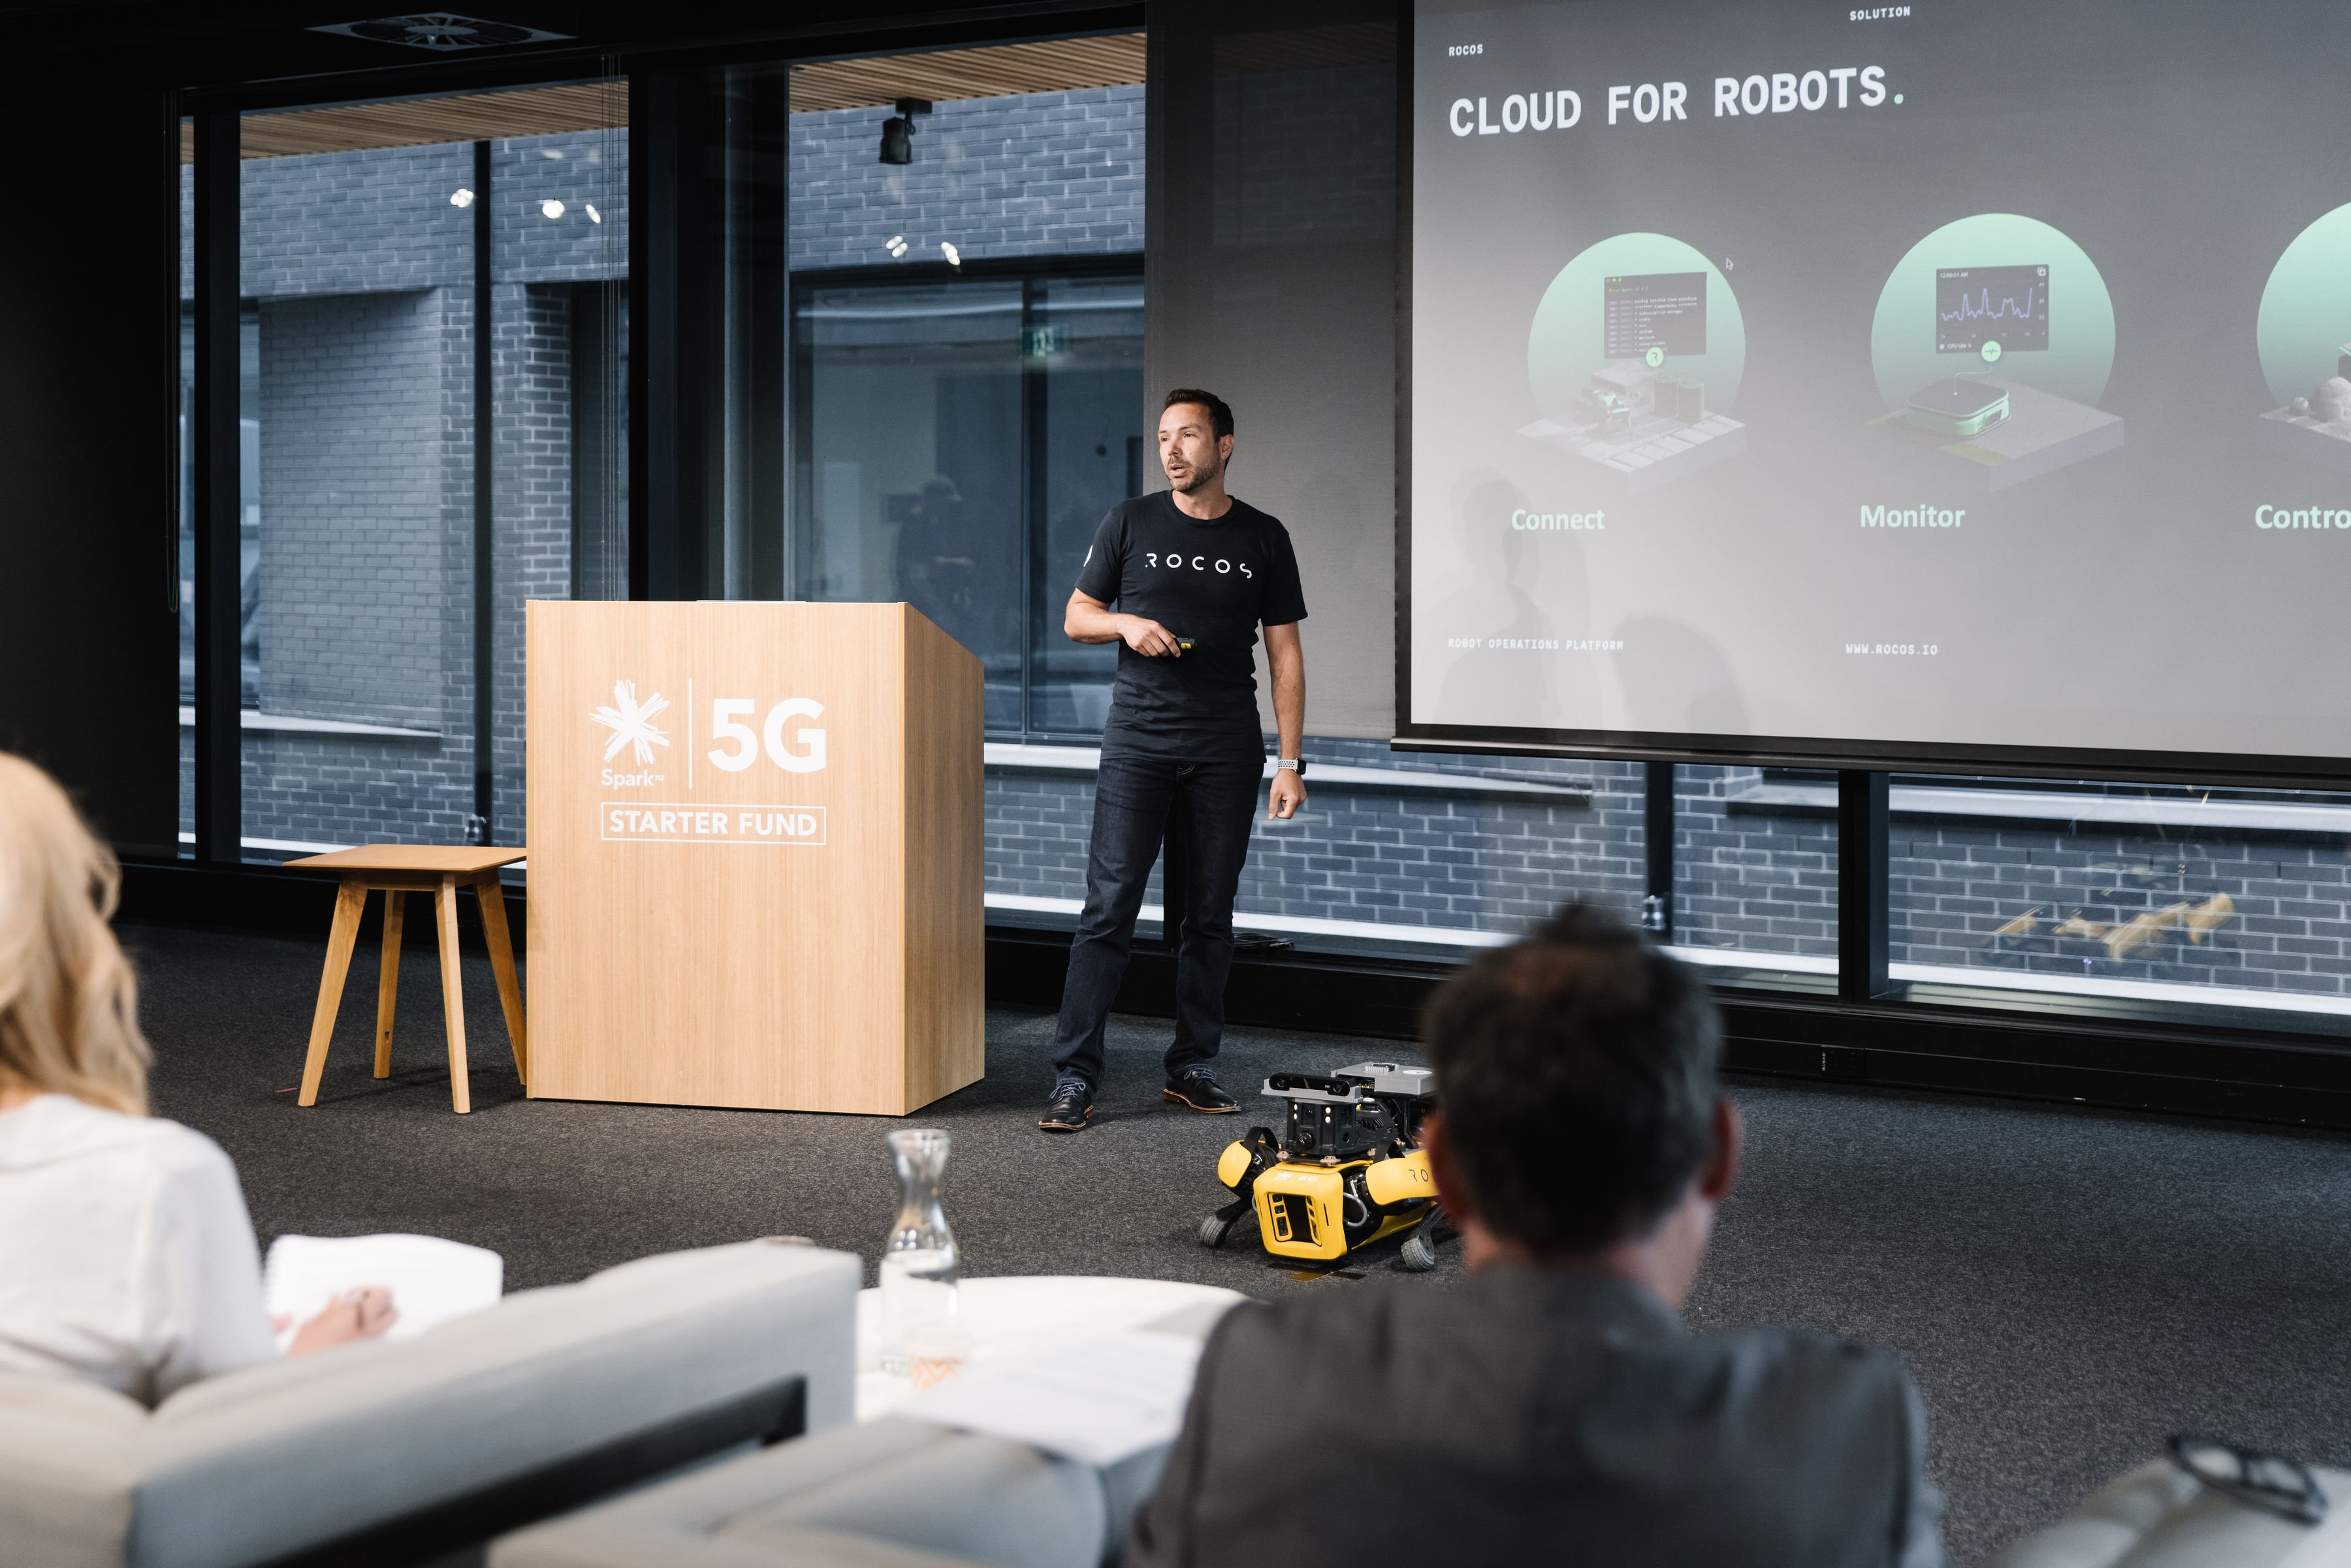 spark5G-cloud-for-robots